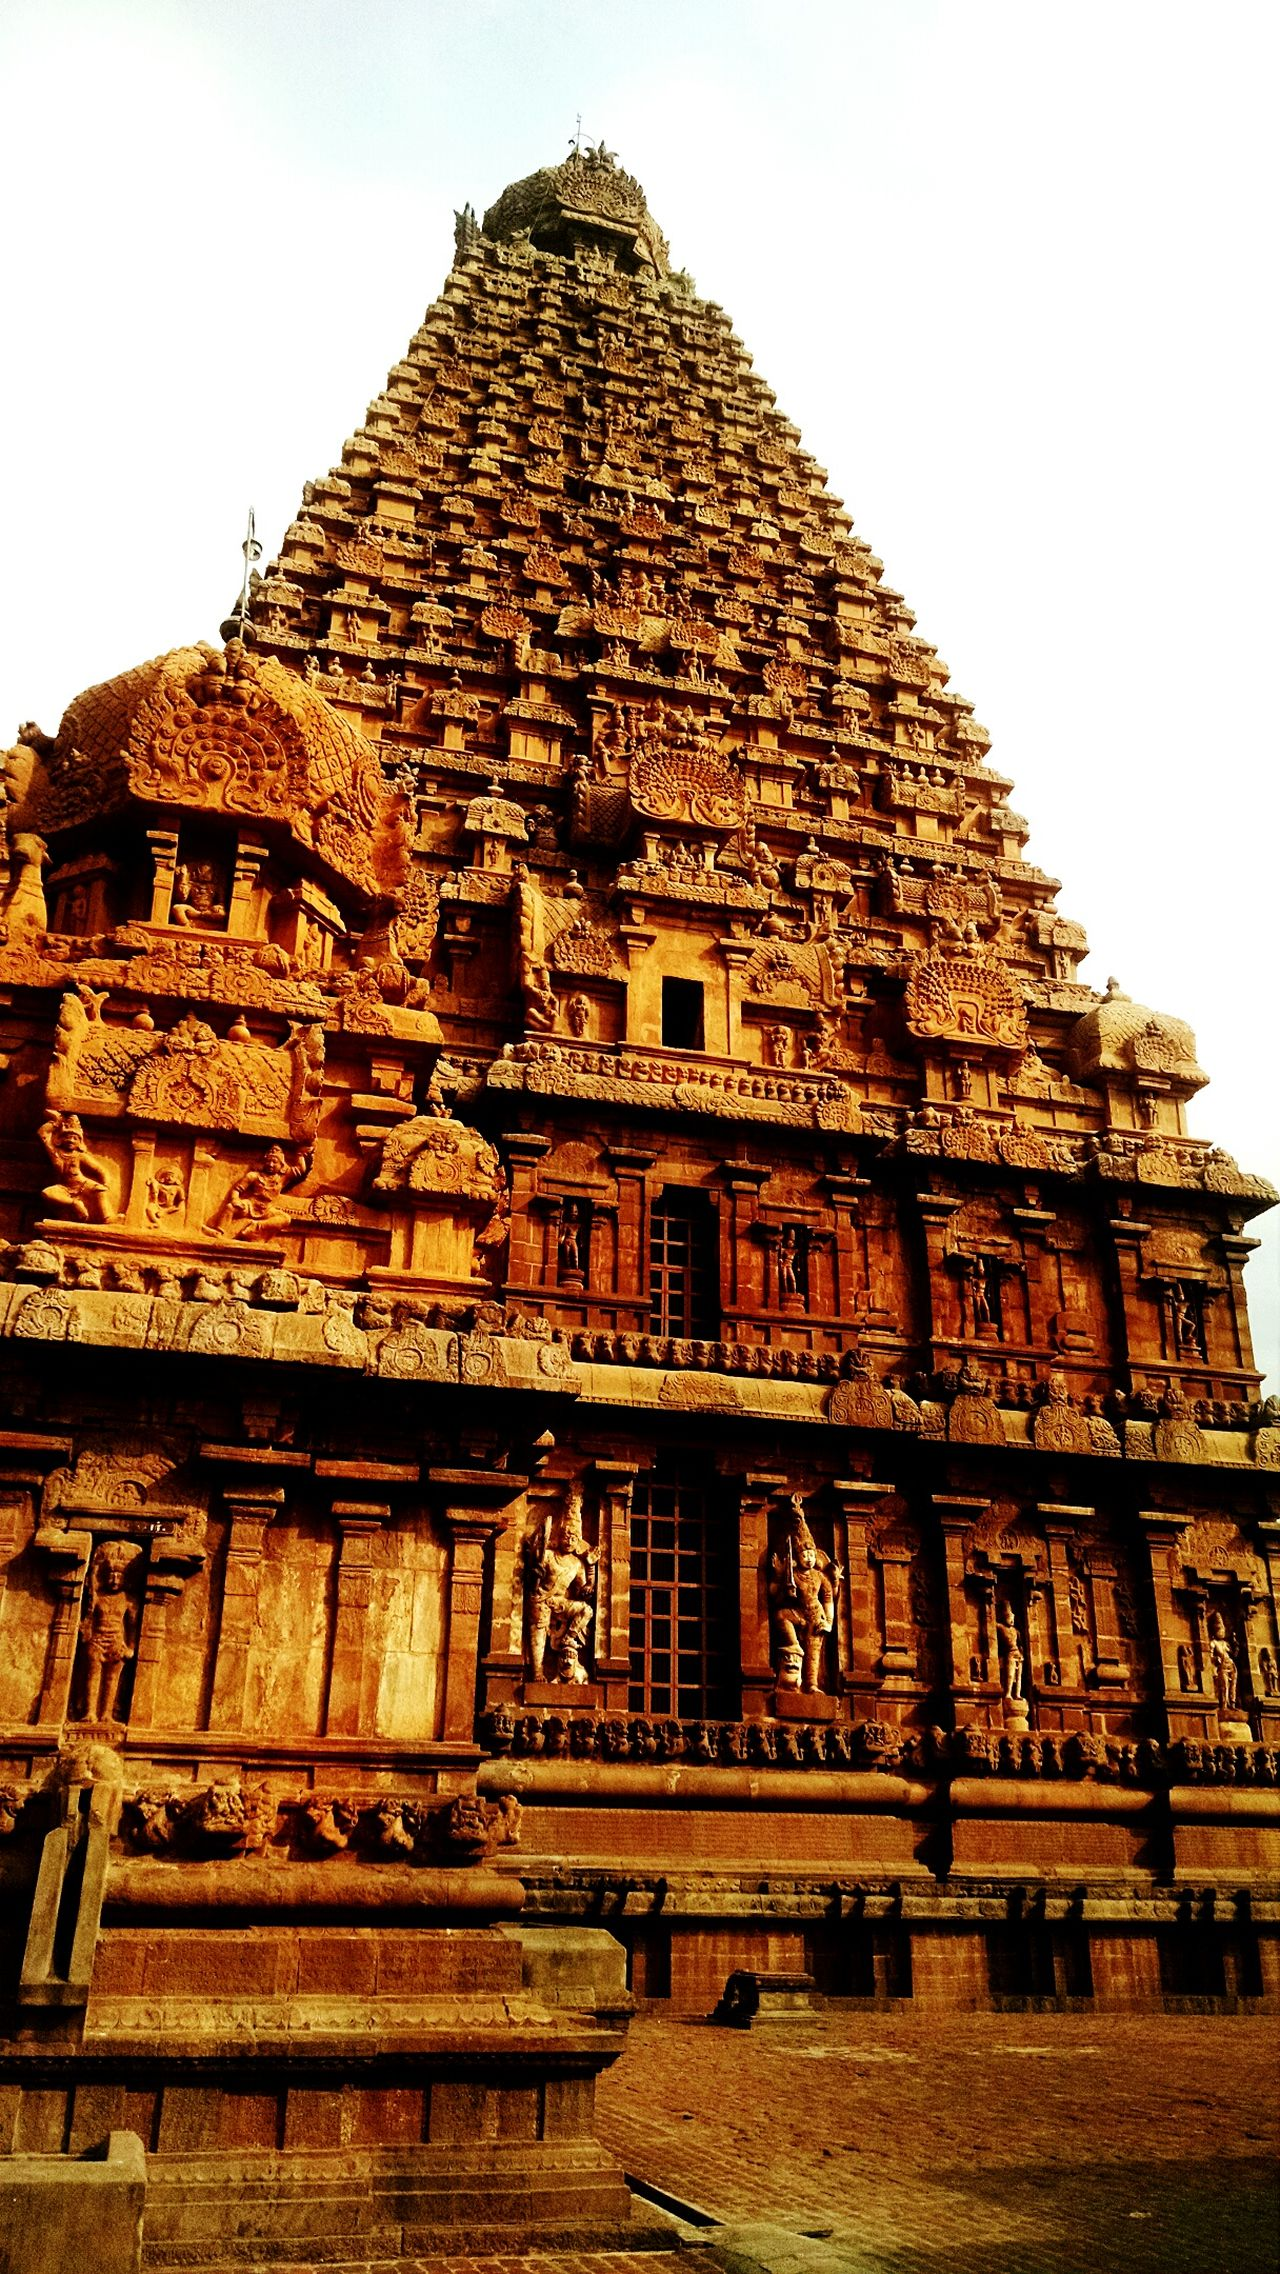 Architecture Travel Destinations Religion Travel Tourism Old Ruin History Ancient Civilization Ancient Built Structure Building Exterior King - Royal Person Vacations No People Outdoors Big Temple Tanjore Ancient India Tamilnadu Monument Archaeology Place Of Worship Spirituality Architecture